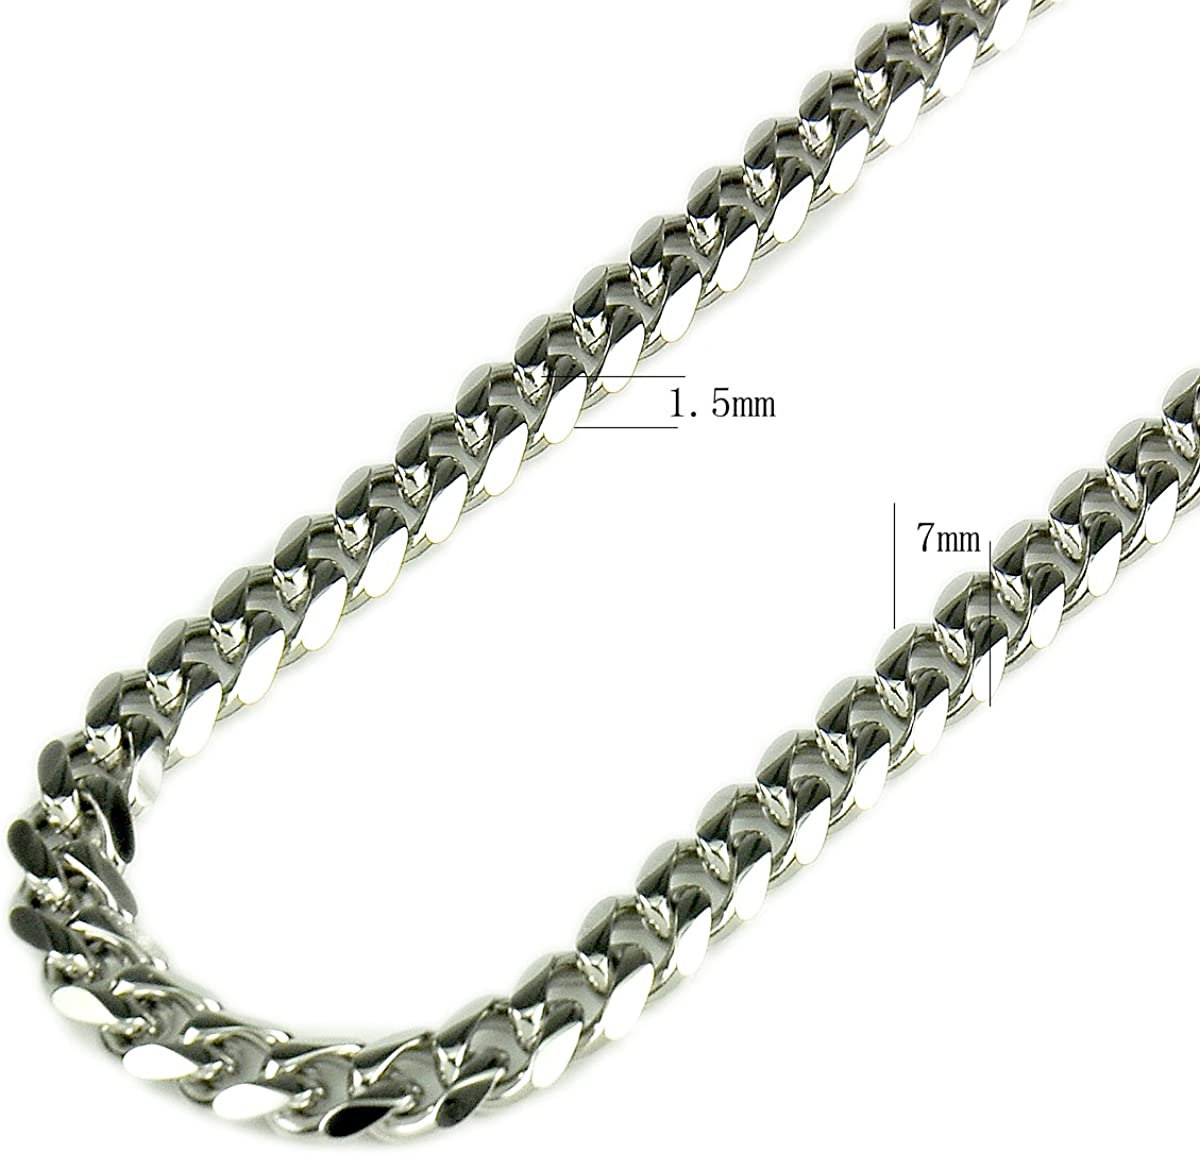 Flyingeagle Trade Inc 30 Men Stainless Steel Necklace Silver Tone Chain 24 1.5mm